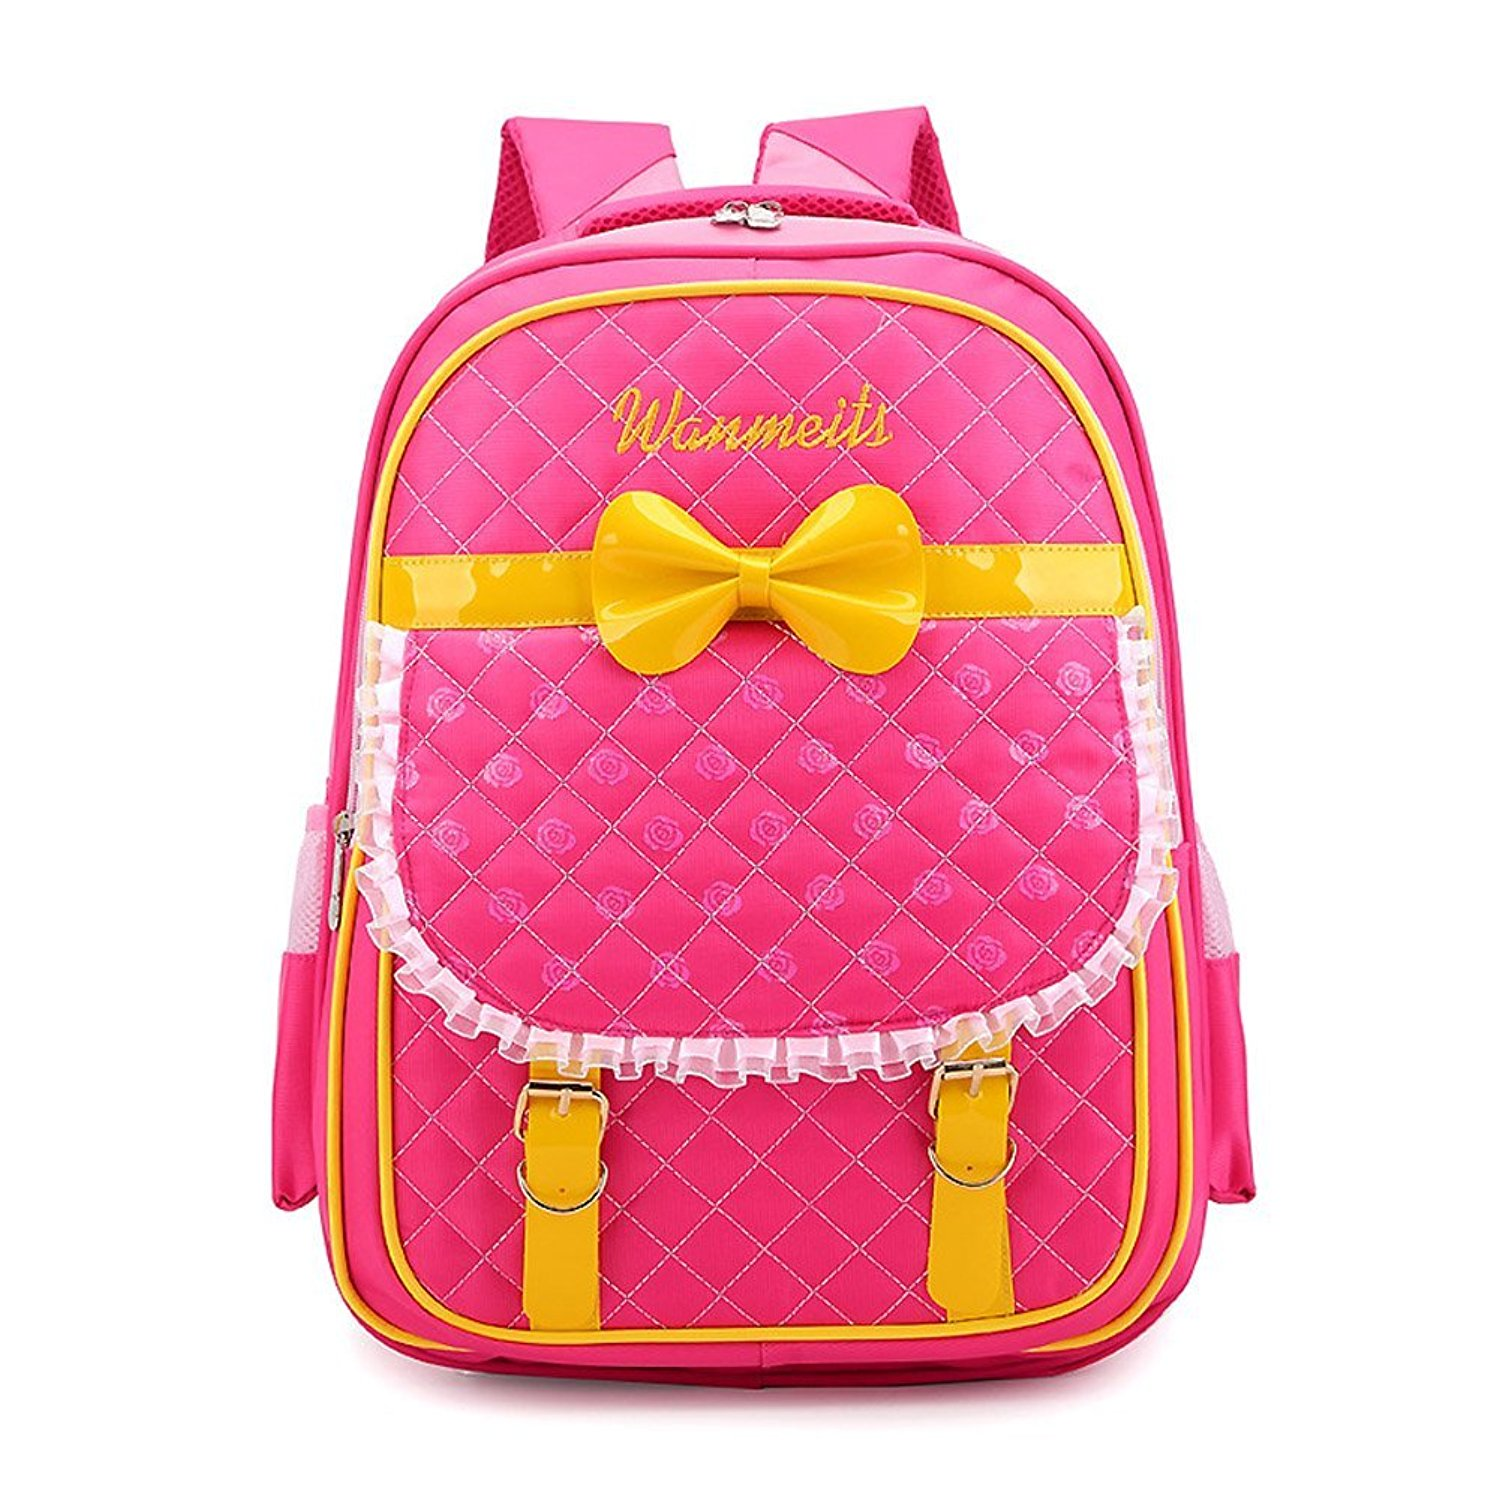 dfe1656f15 Dsinlare Boys School Backpacks for Kids Book Bags Cool Bookbags 35.59.  Dsinlare Cute Bowknot Kids Backpack for School Girls Bookbags